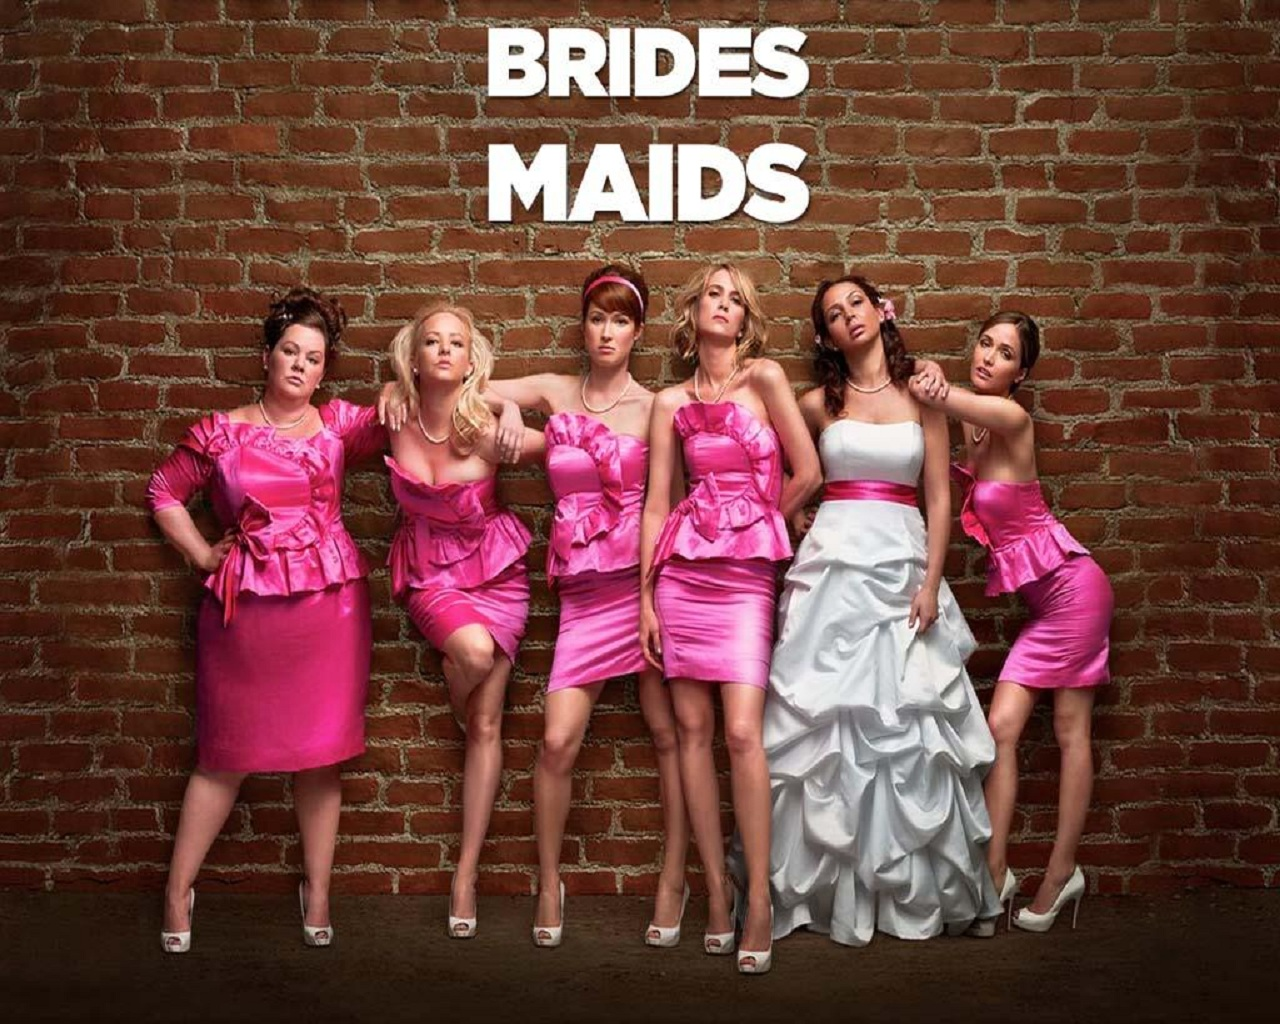 Bridesmaids Movie Wallpaper 2011 Cute Girls Celebrity